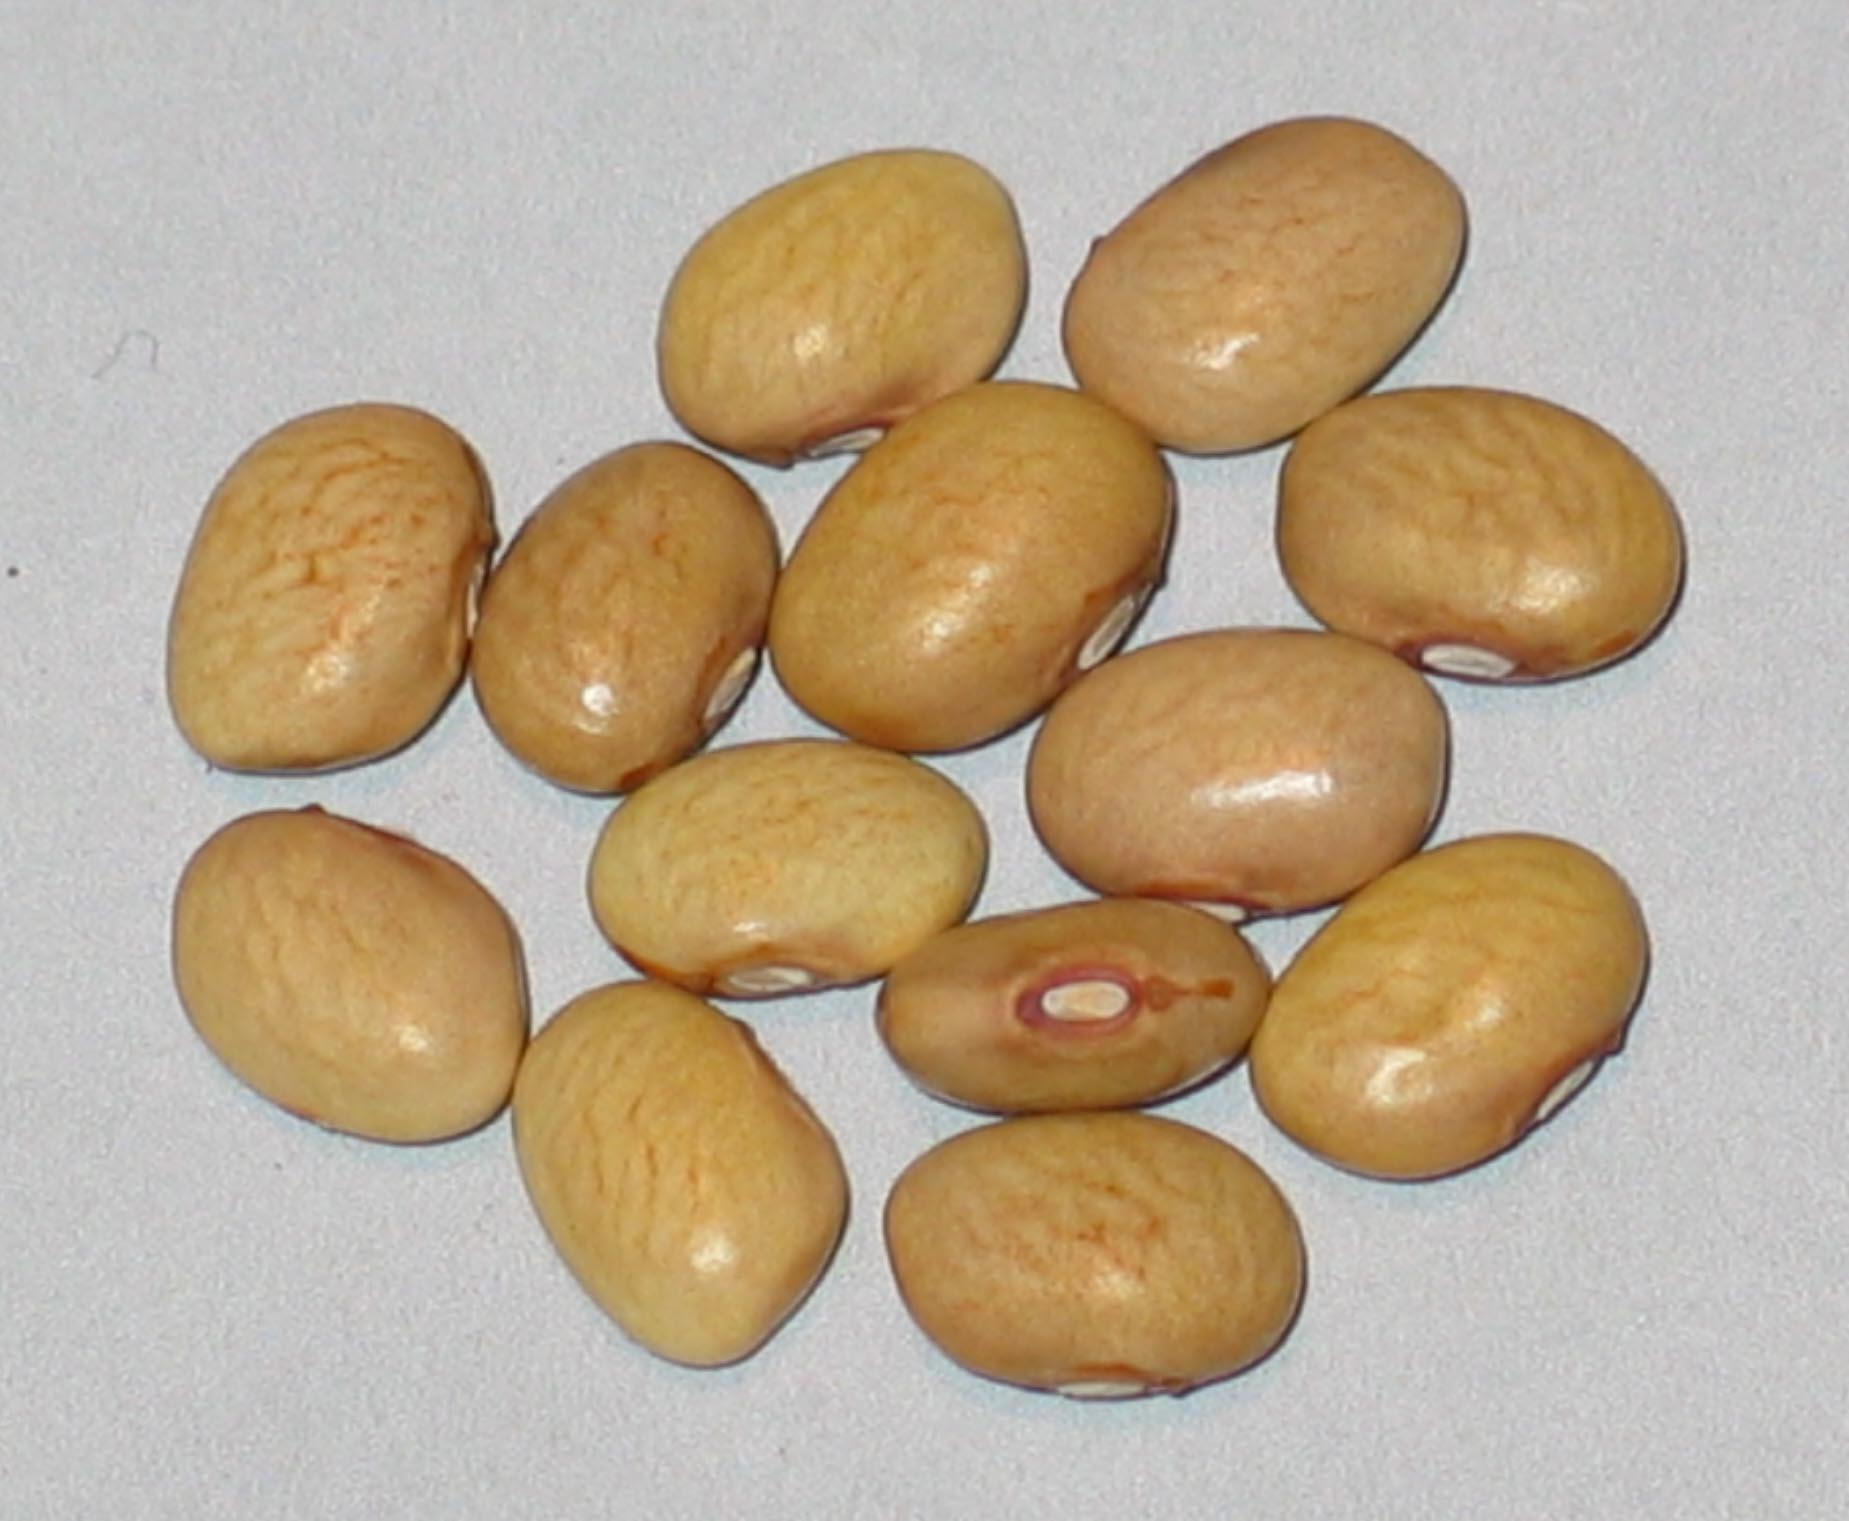 image of Koronis Golden Navy beans